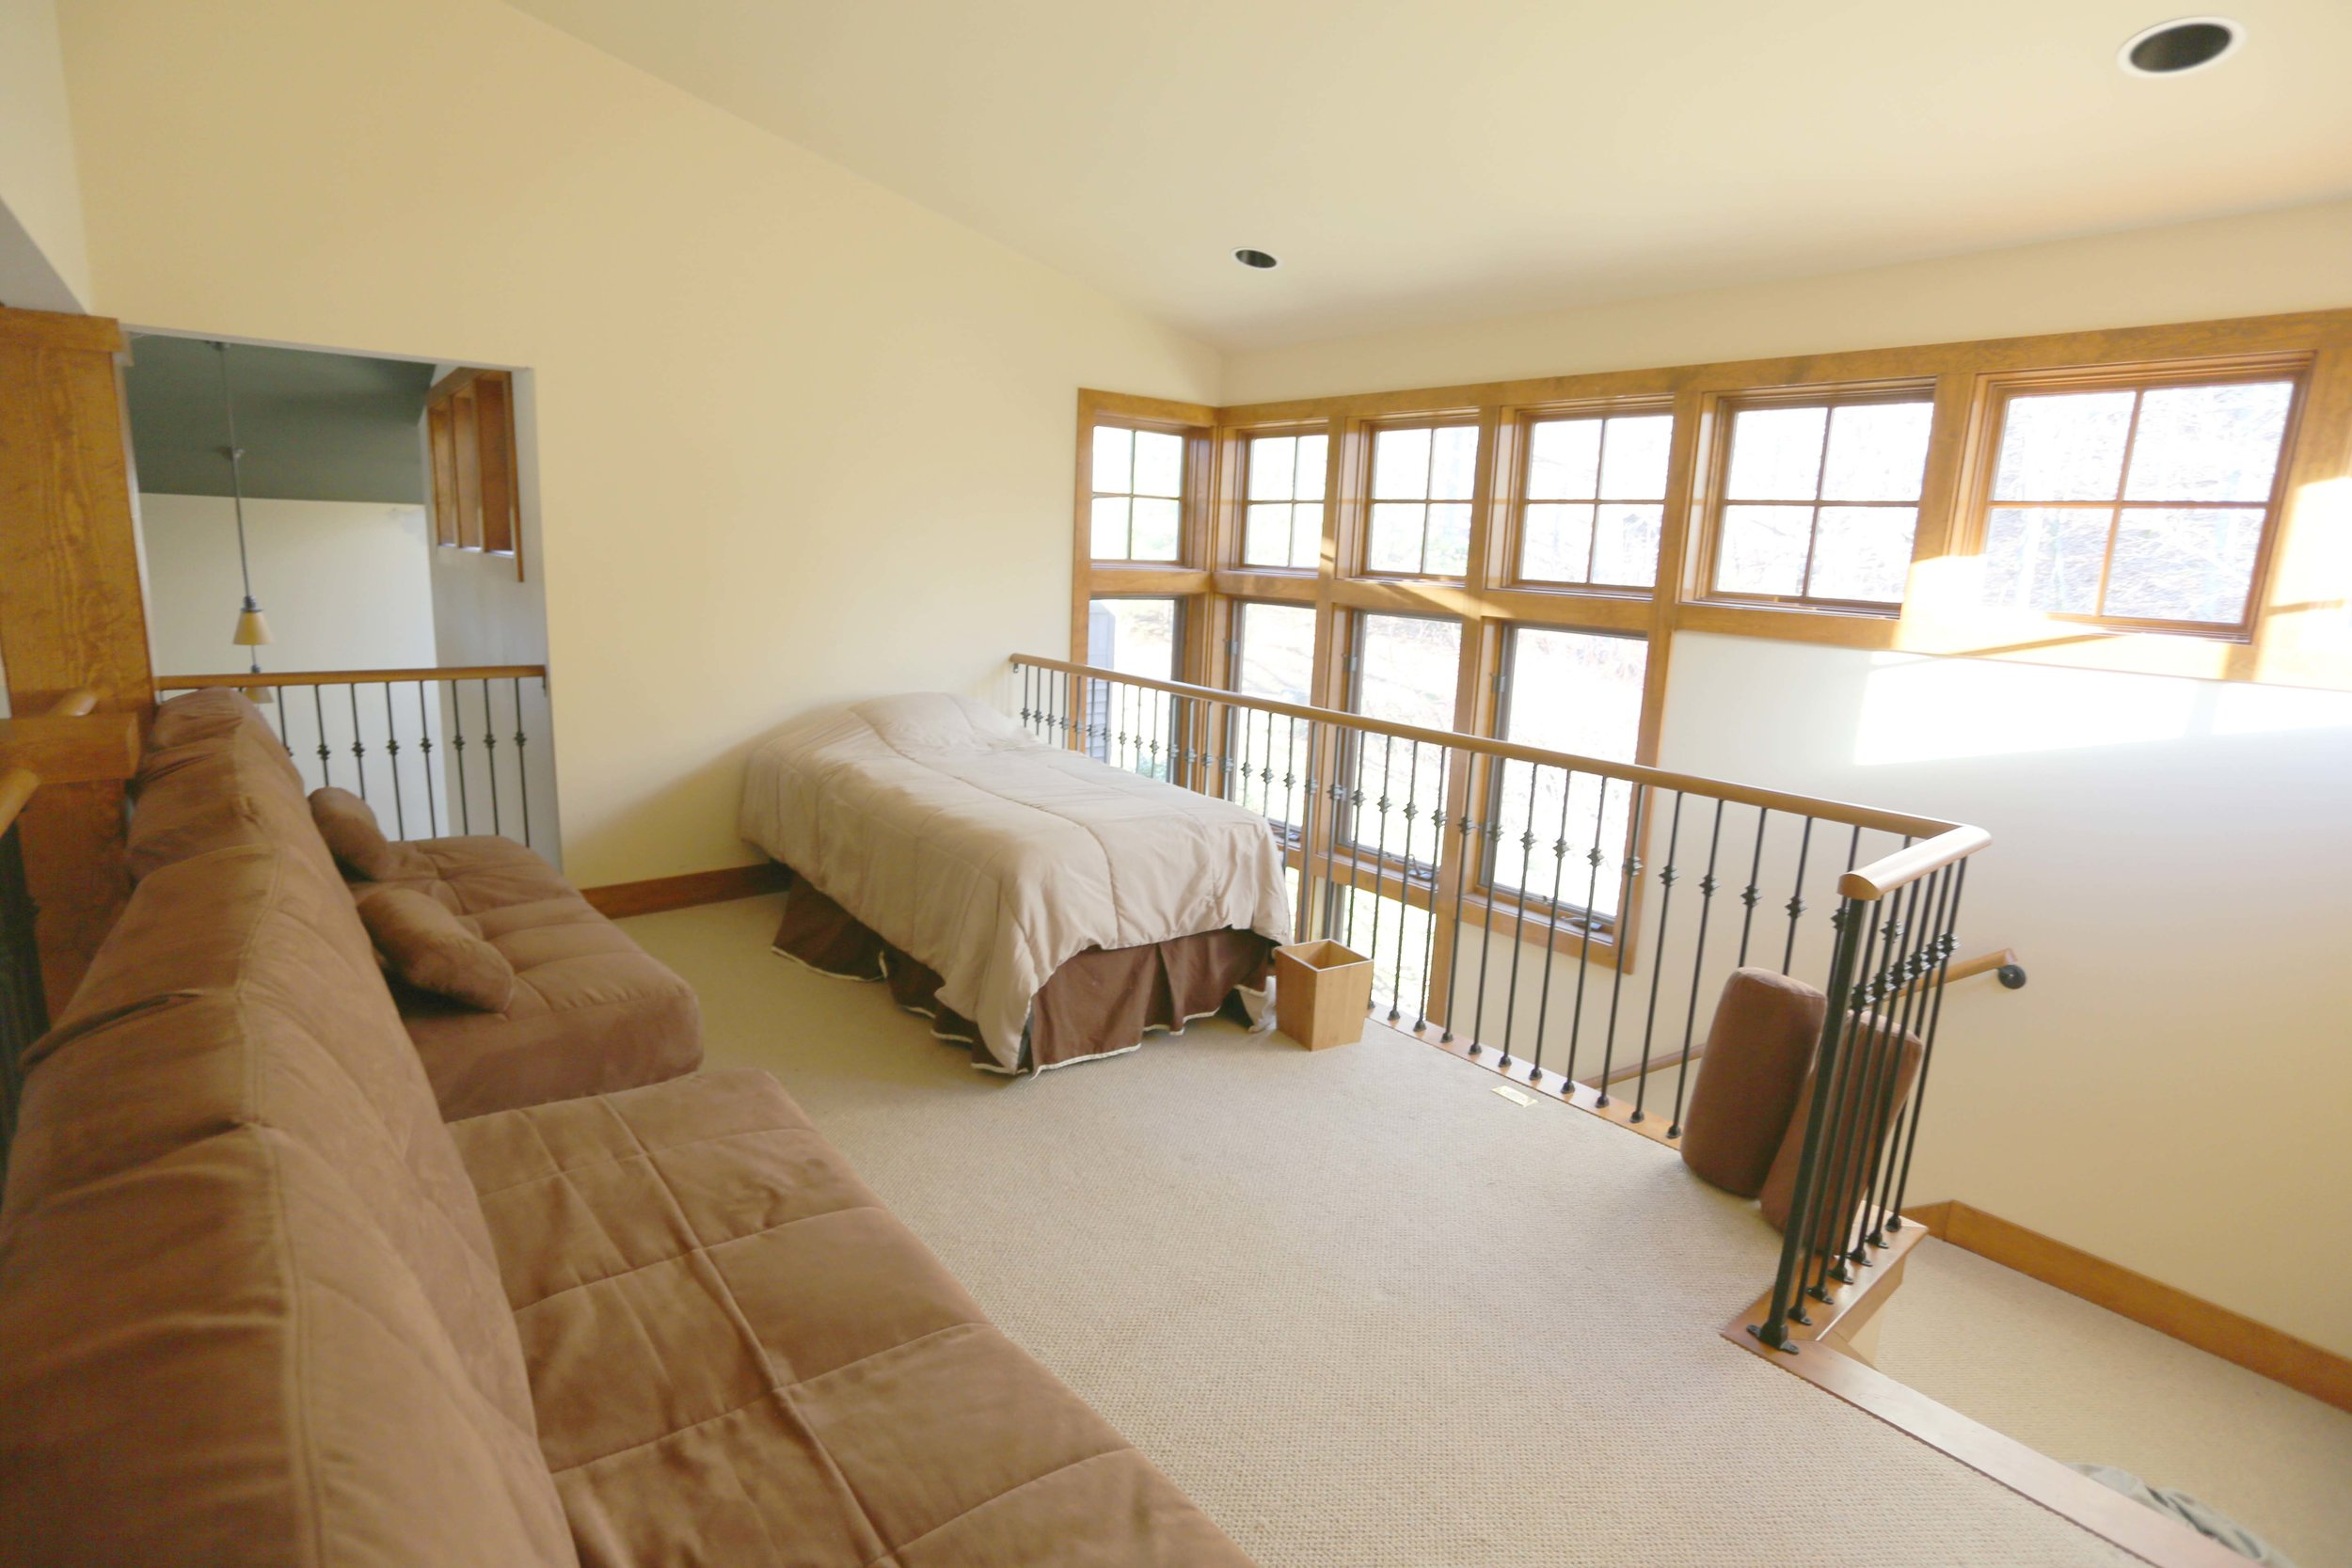 The Circle Lodge Main Loft has two queen futons and a single bed. Shared full bathroom downstairs Horseshoes, bocci, shuffleboard, fishing pond on site. Organic produce straight from farm steps away.